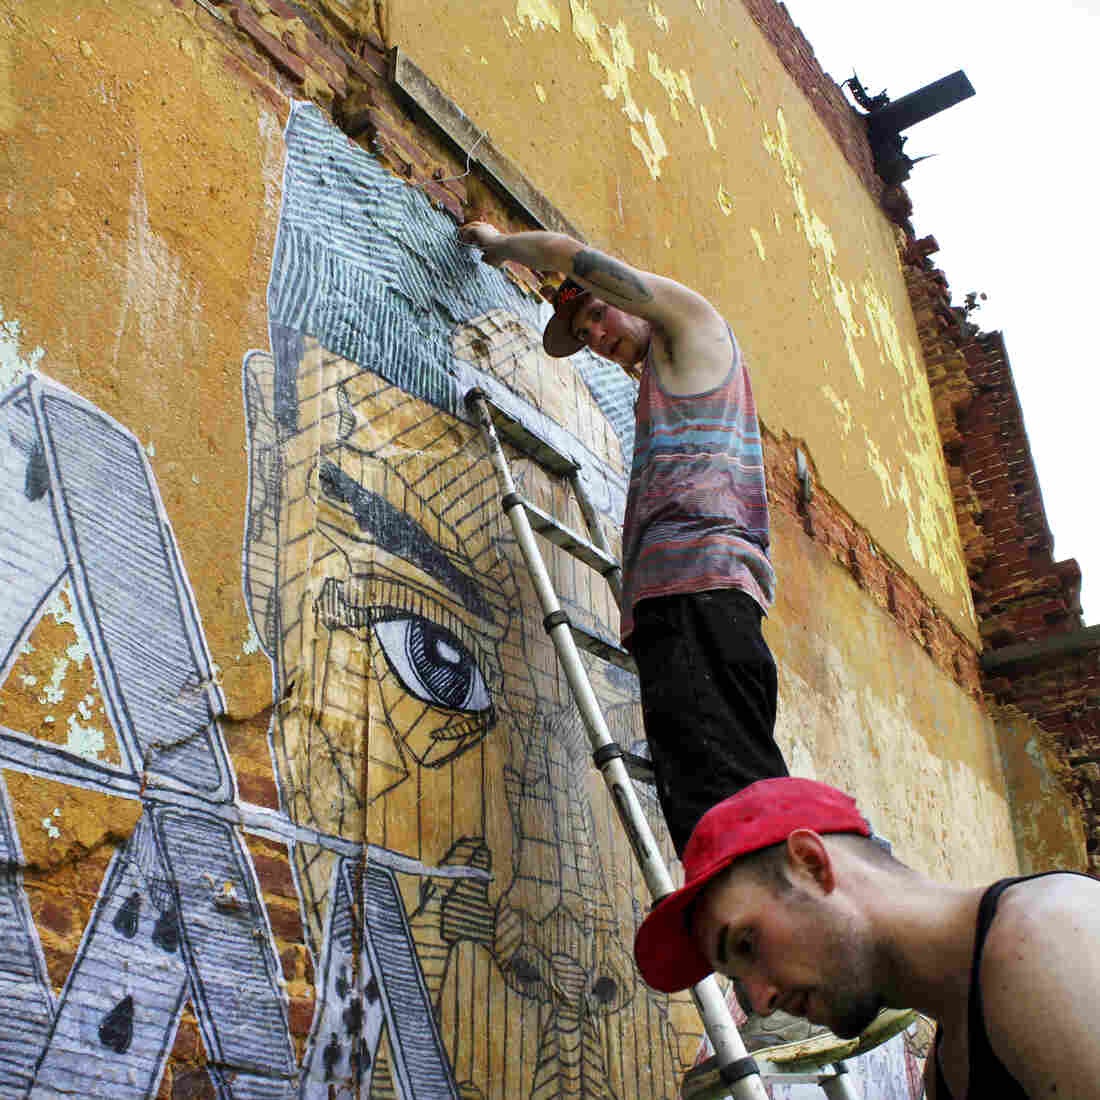 Baltimore Activists Use Art And The Web To Fight Blight